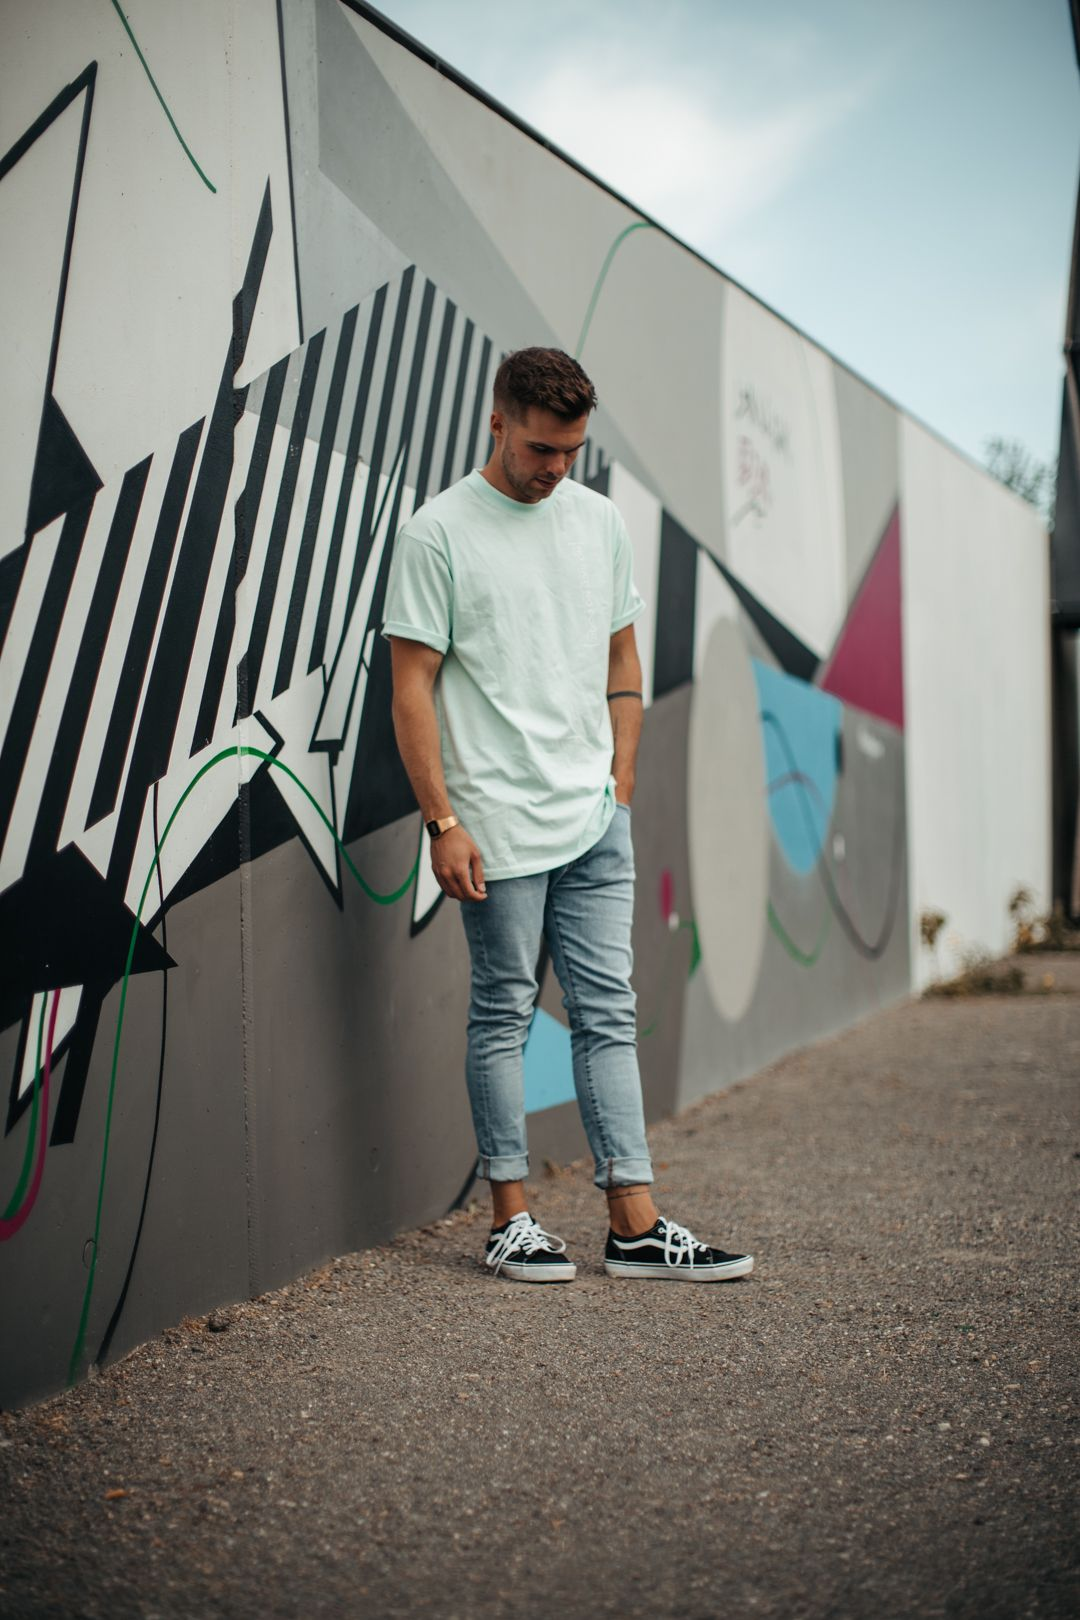 Pin auf sneaker fashion #sneaker #fashion #outfits #herren